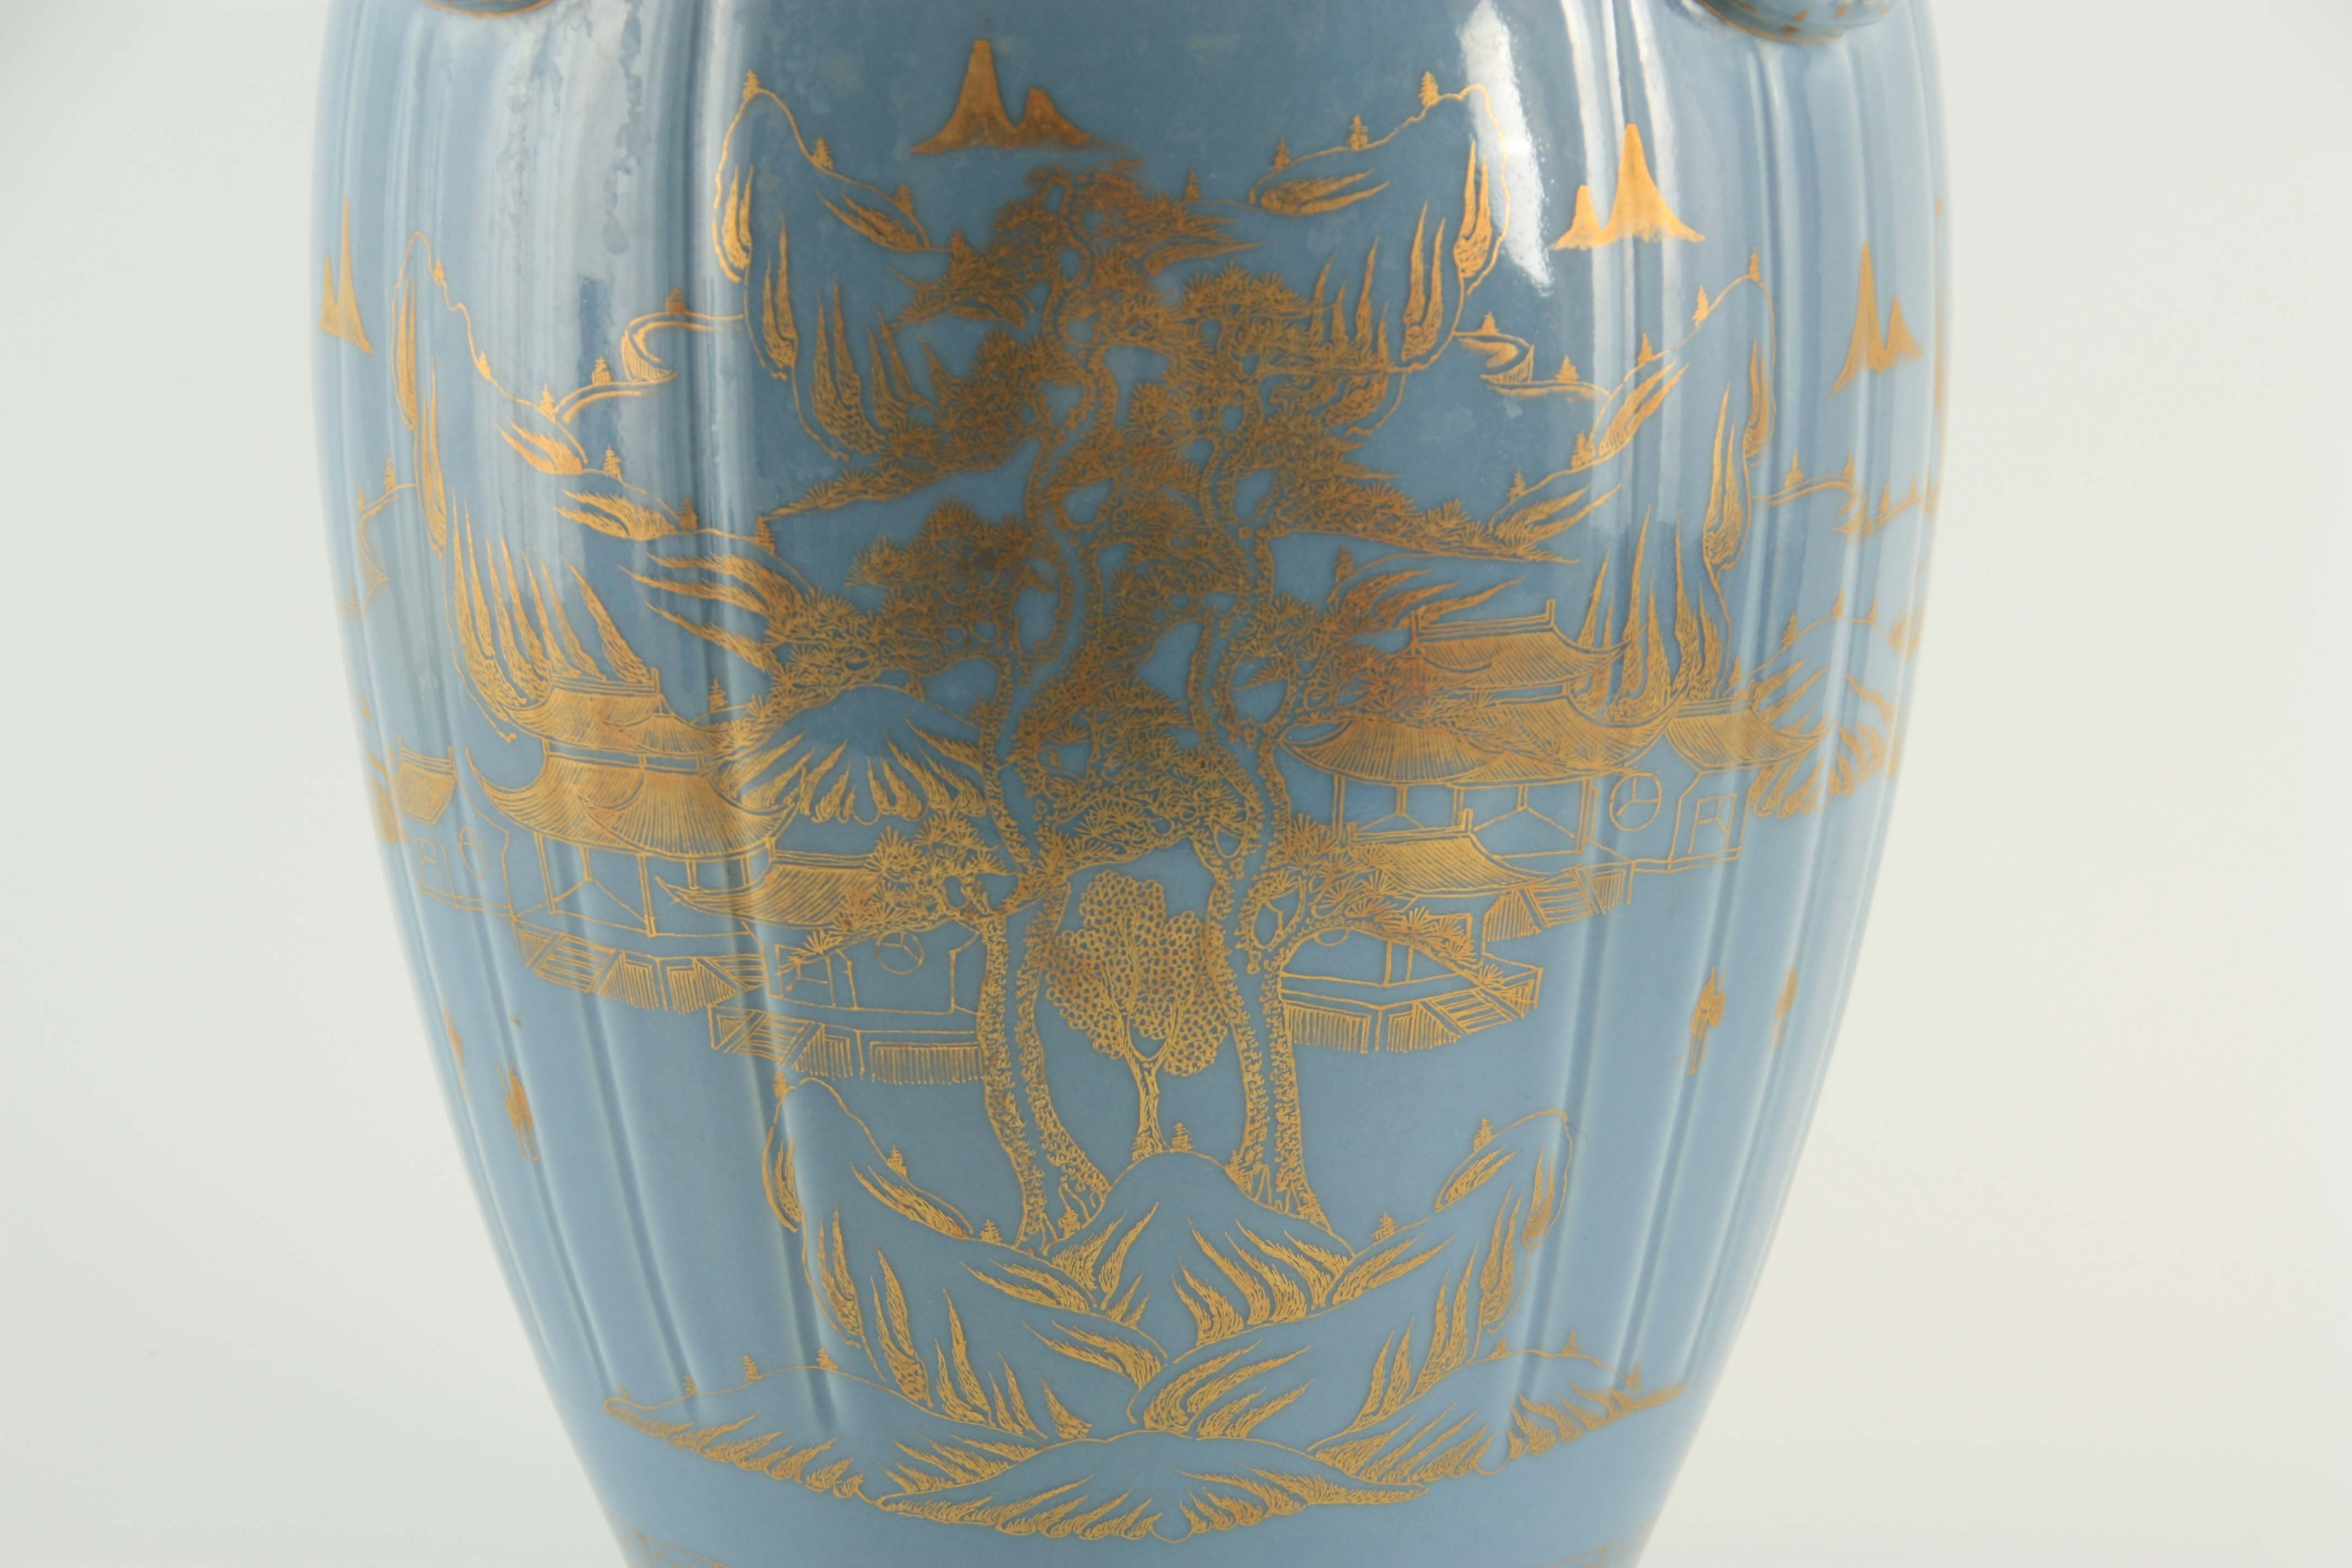 AN IMPRESSIVE 19TH CENTURY CHINESE BLUE AND GILT DECORATED VASE of ribbed shape with scrolled - Image 4 of 7